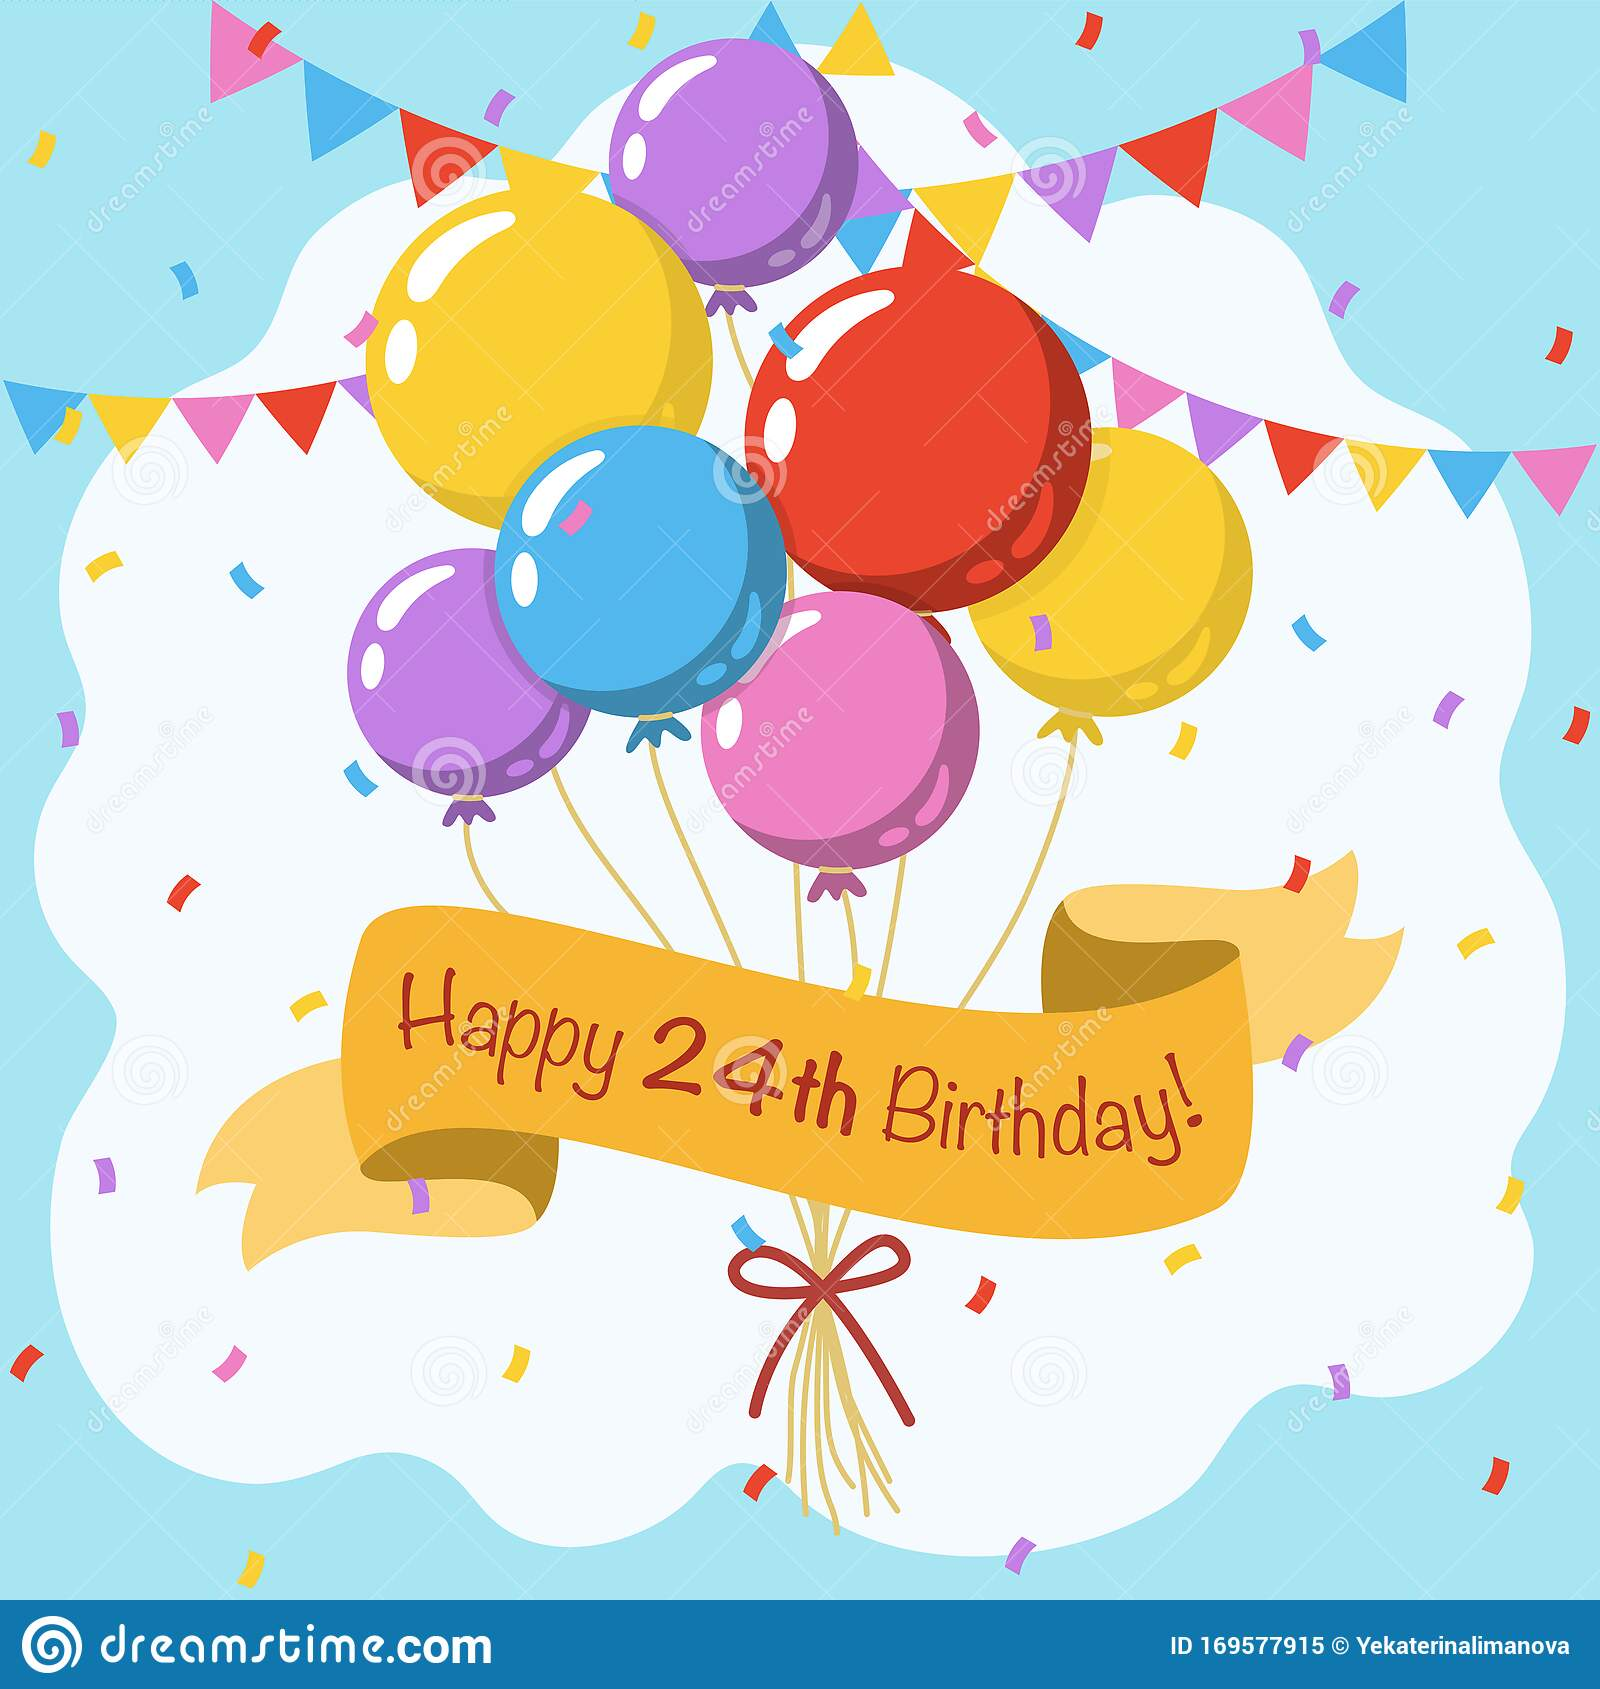 Happy 24th Birthday Colorful Vector Illustration Greeting Card Stock Vector Illustration Of Bright Decorative 169577915